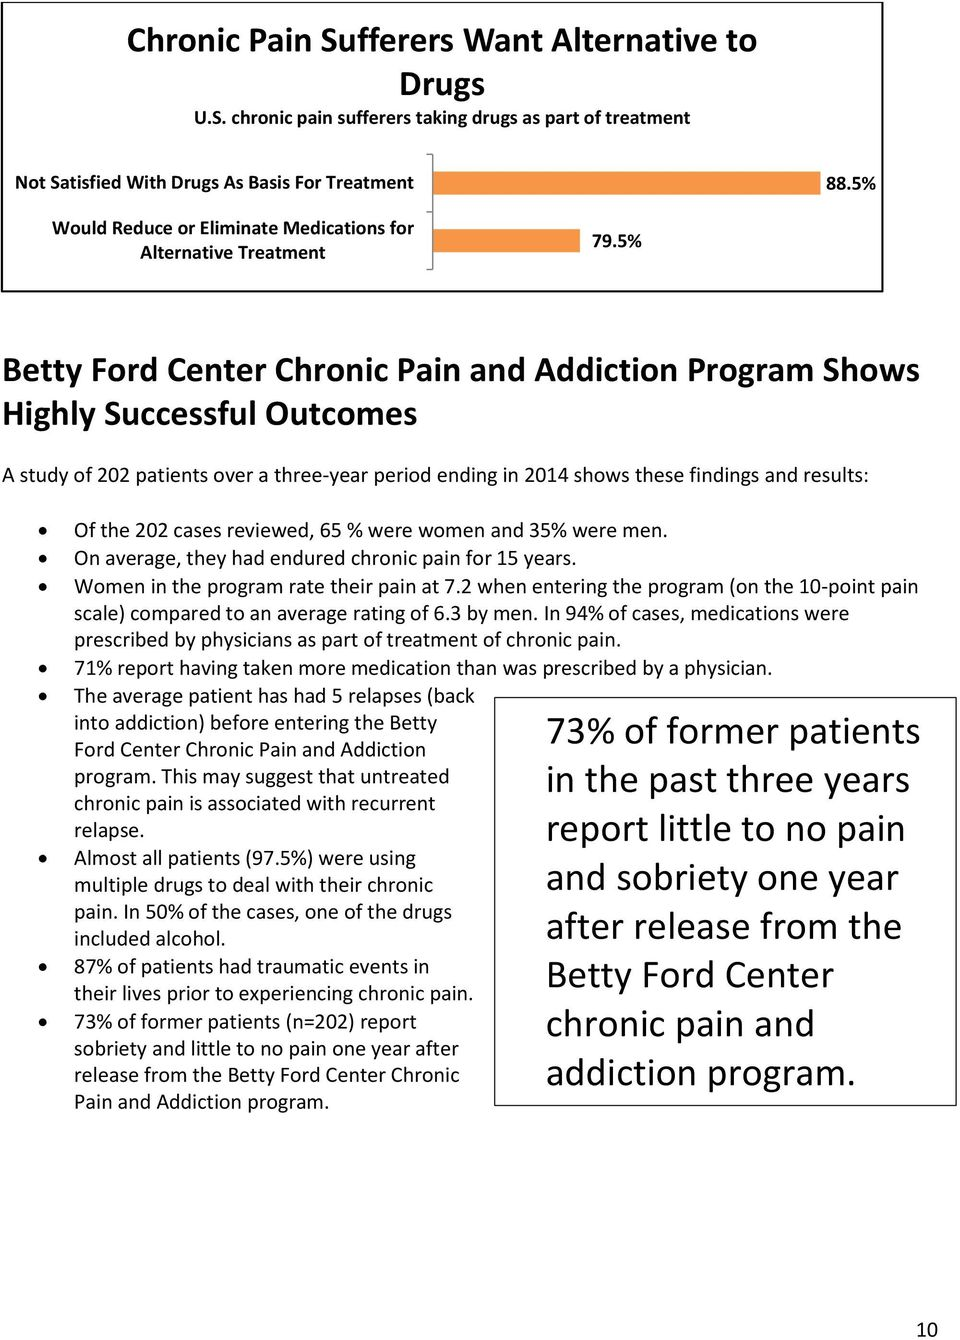 5% Betty Ford Center Chronic Pain and Addiction Program Shows Highly Successful Outcomes A study of 202 patients over a three-year period ending in 2014 shows these findings and results: Of the 202